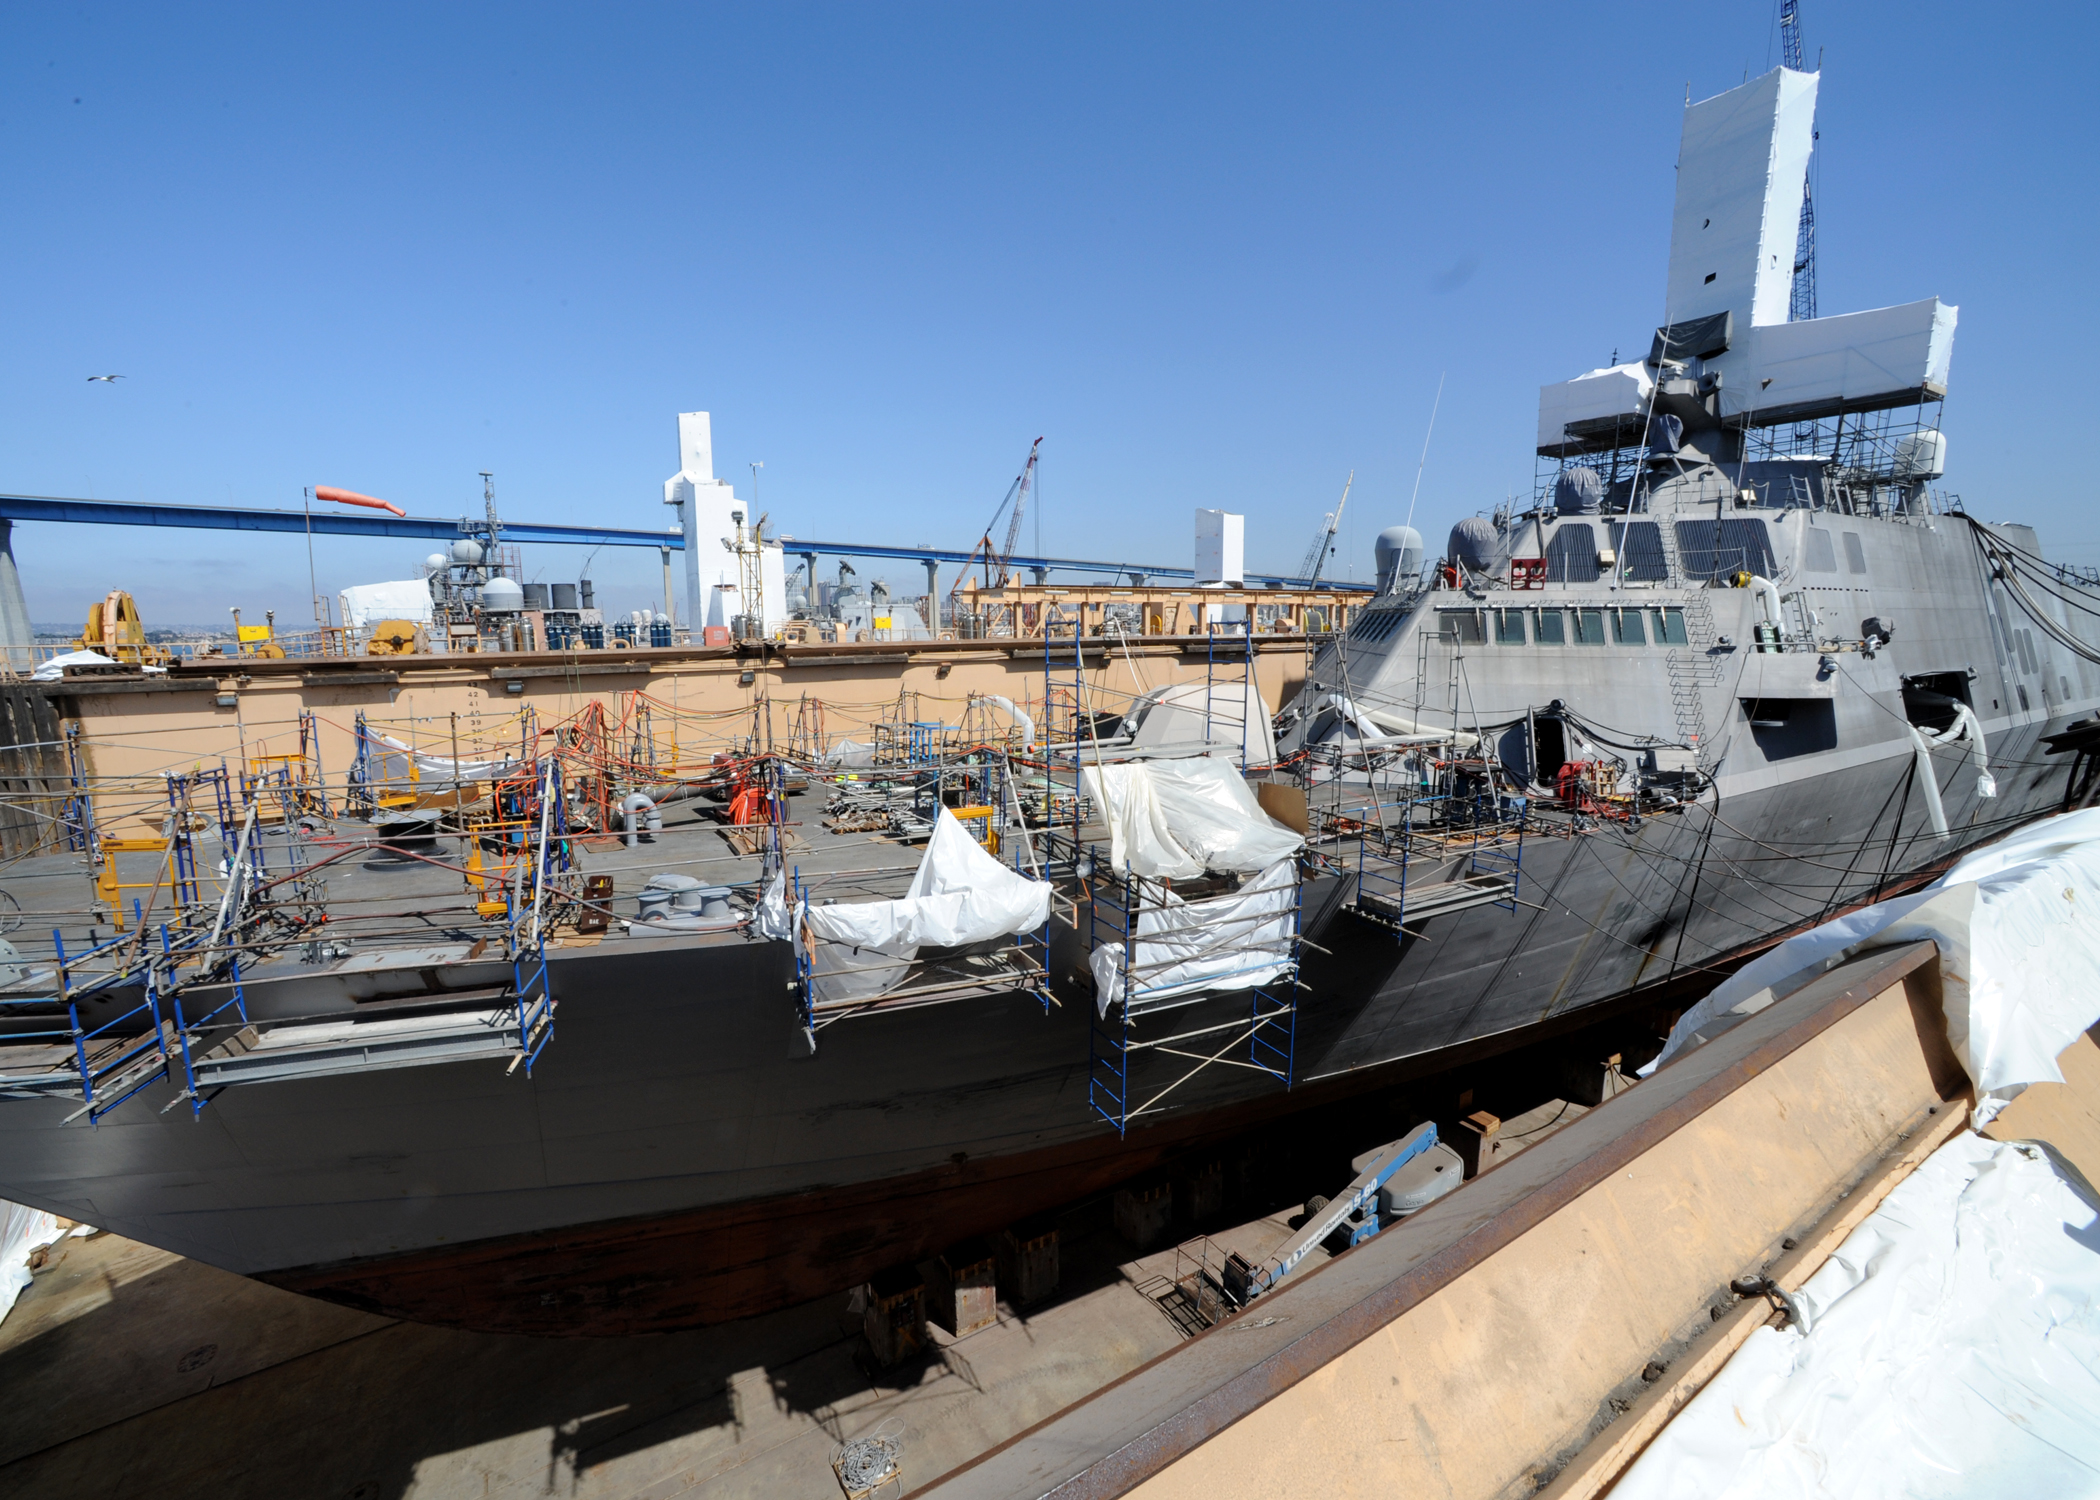 Programme du LCS - Page 10 US_Navy_110720-N-DI719-012_The_littoral_combat_ship_USS_Freedom_%28LCS_1%29_continues_a_scheduled_four-month_maintenance_period_in_a_dry_dock_at_Naval